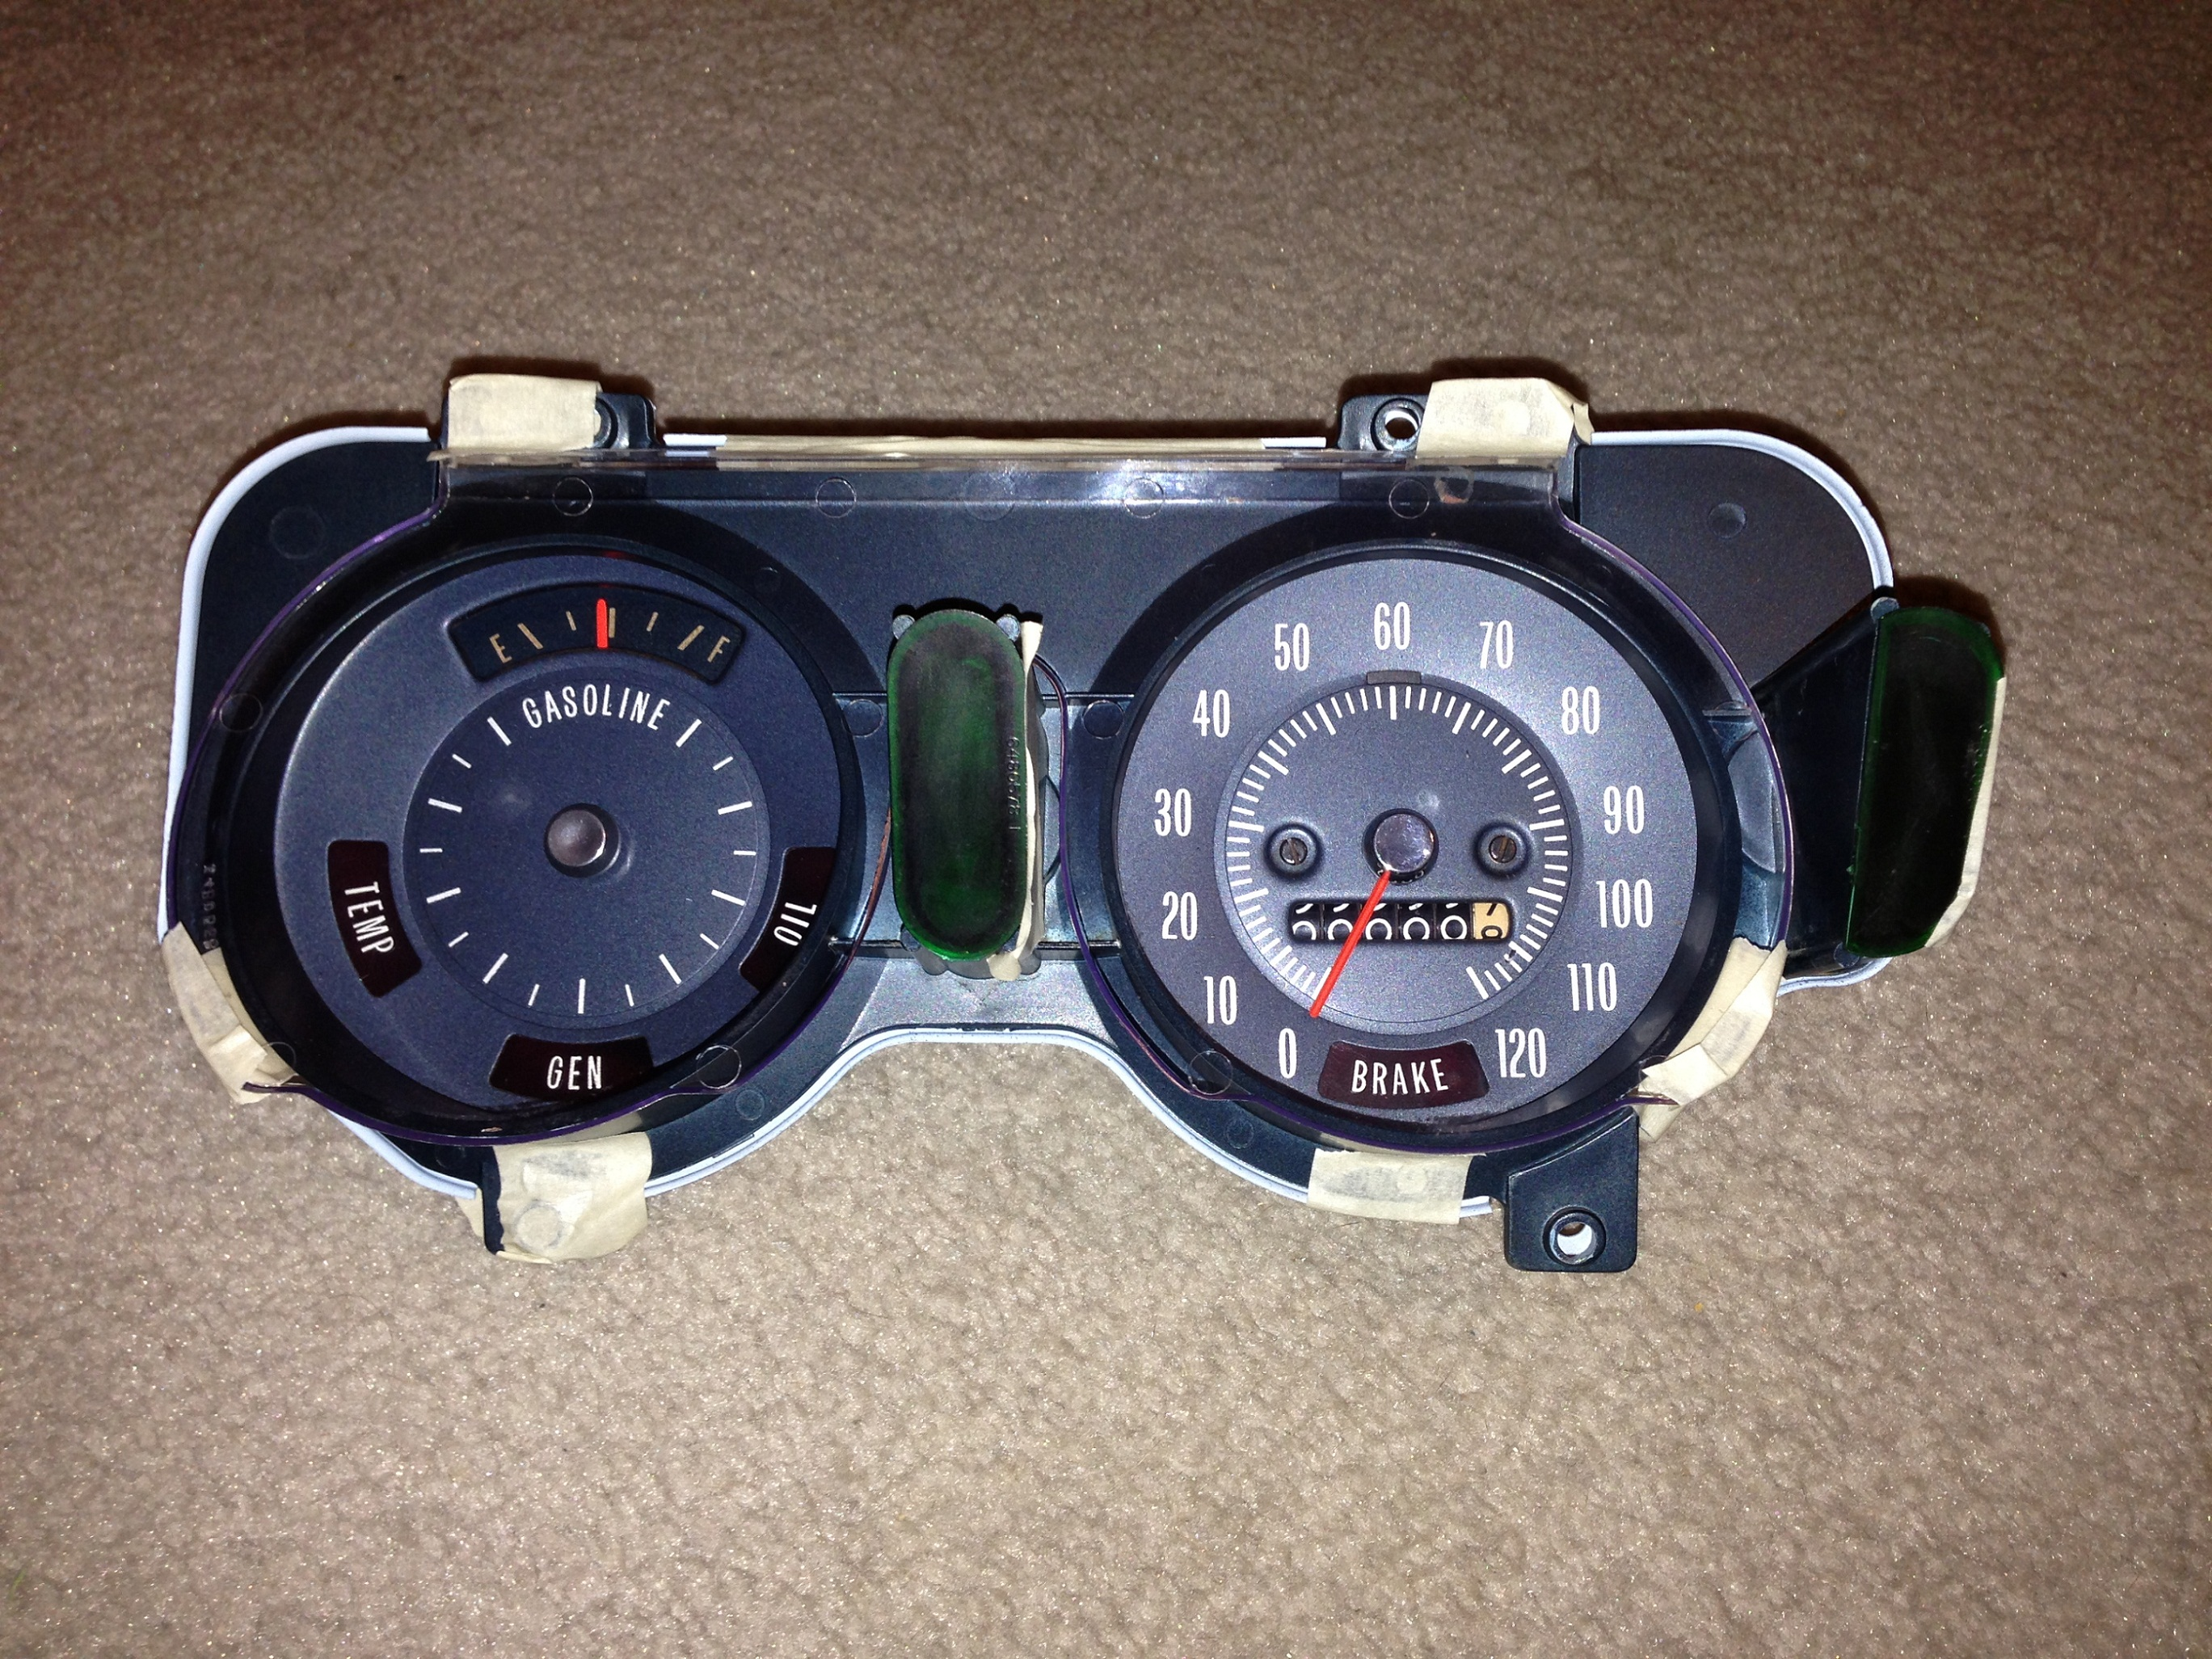 Body shop visit update-speedo-front.jpg